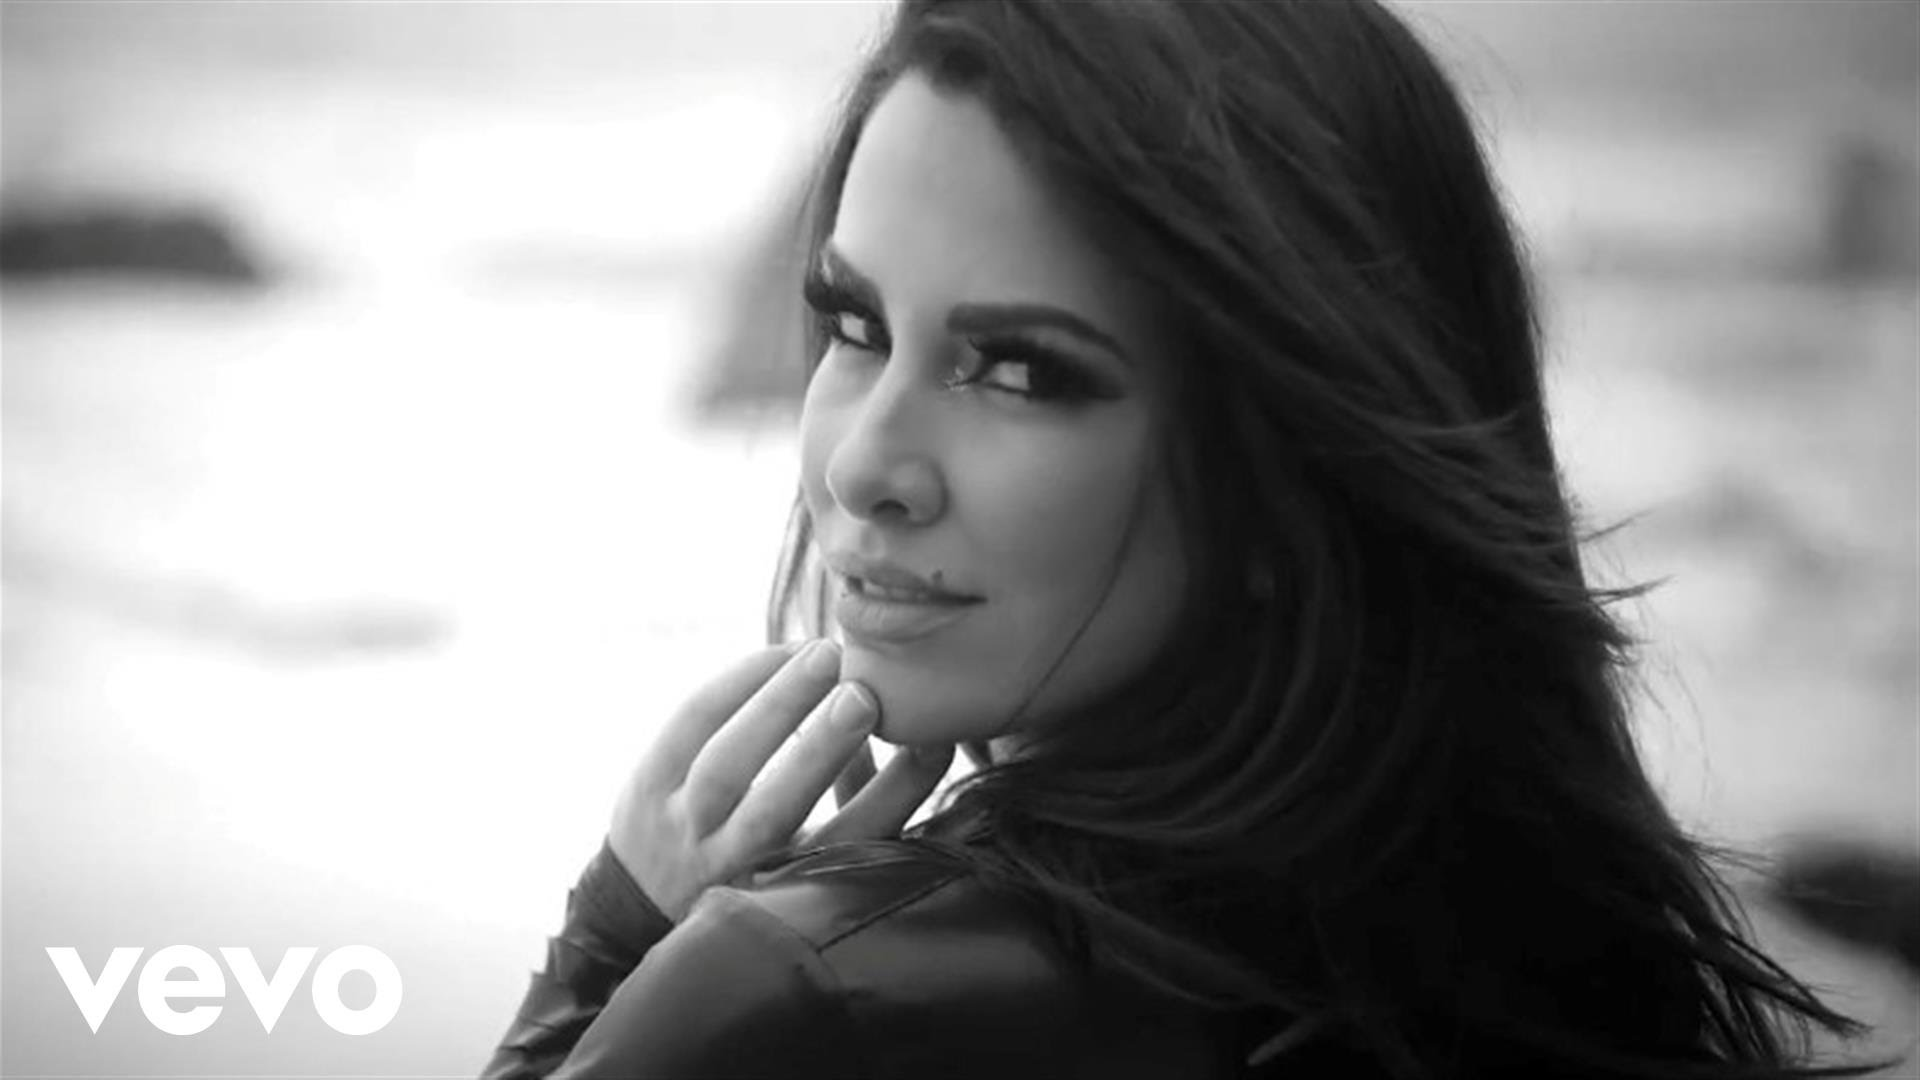 Nayer – Suave (Kiss Me) ft. Pitbull & Mohombi